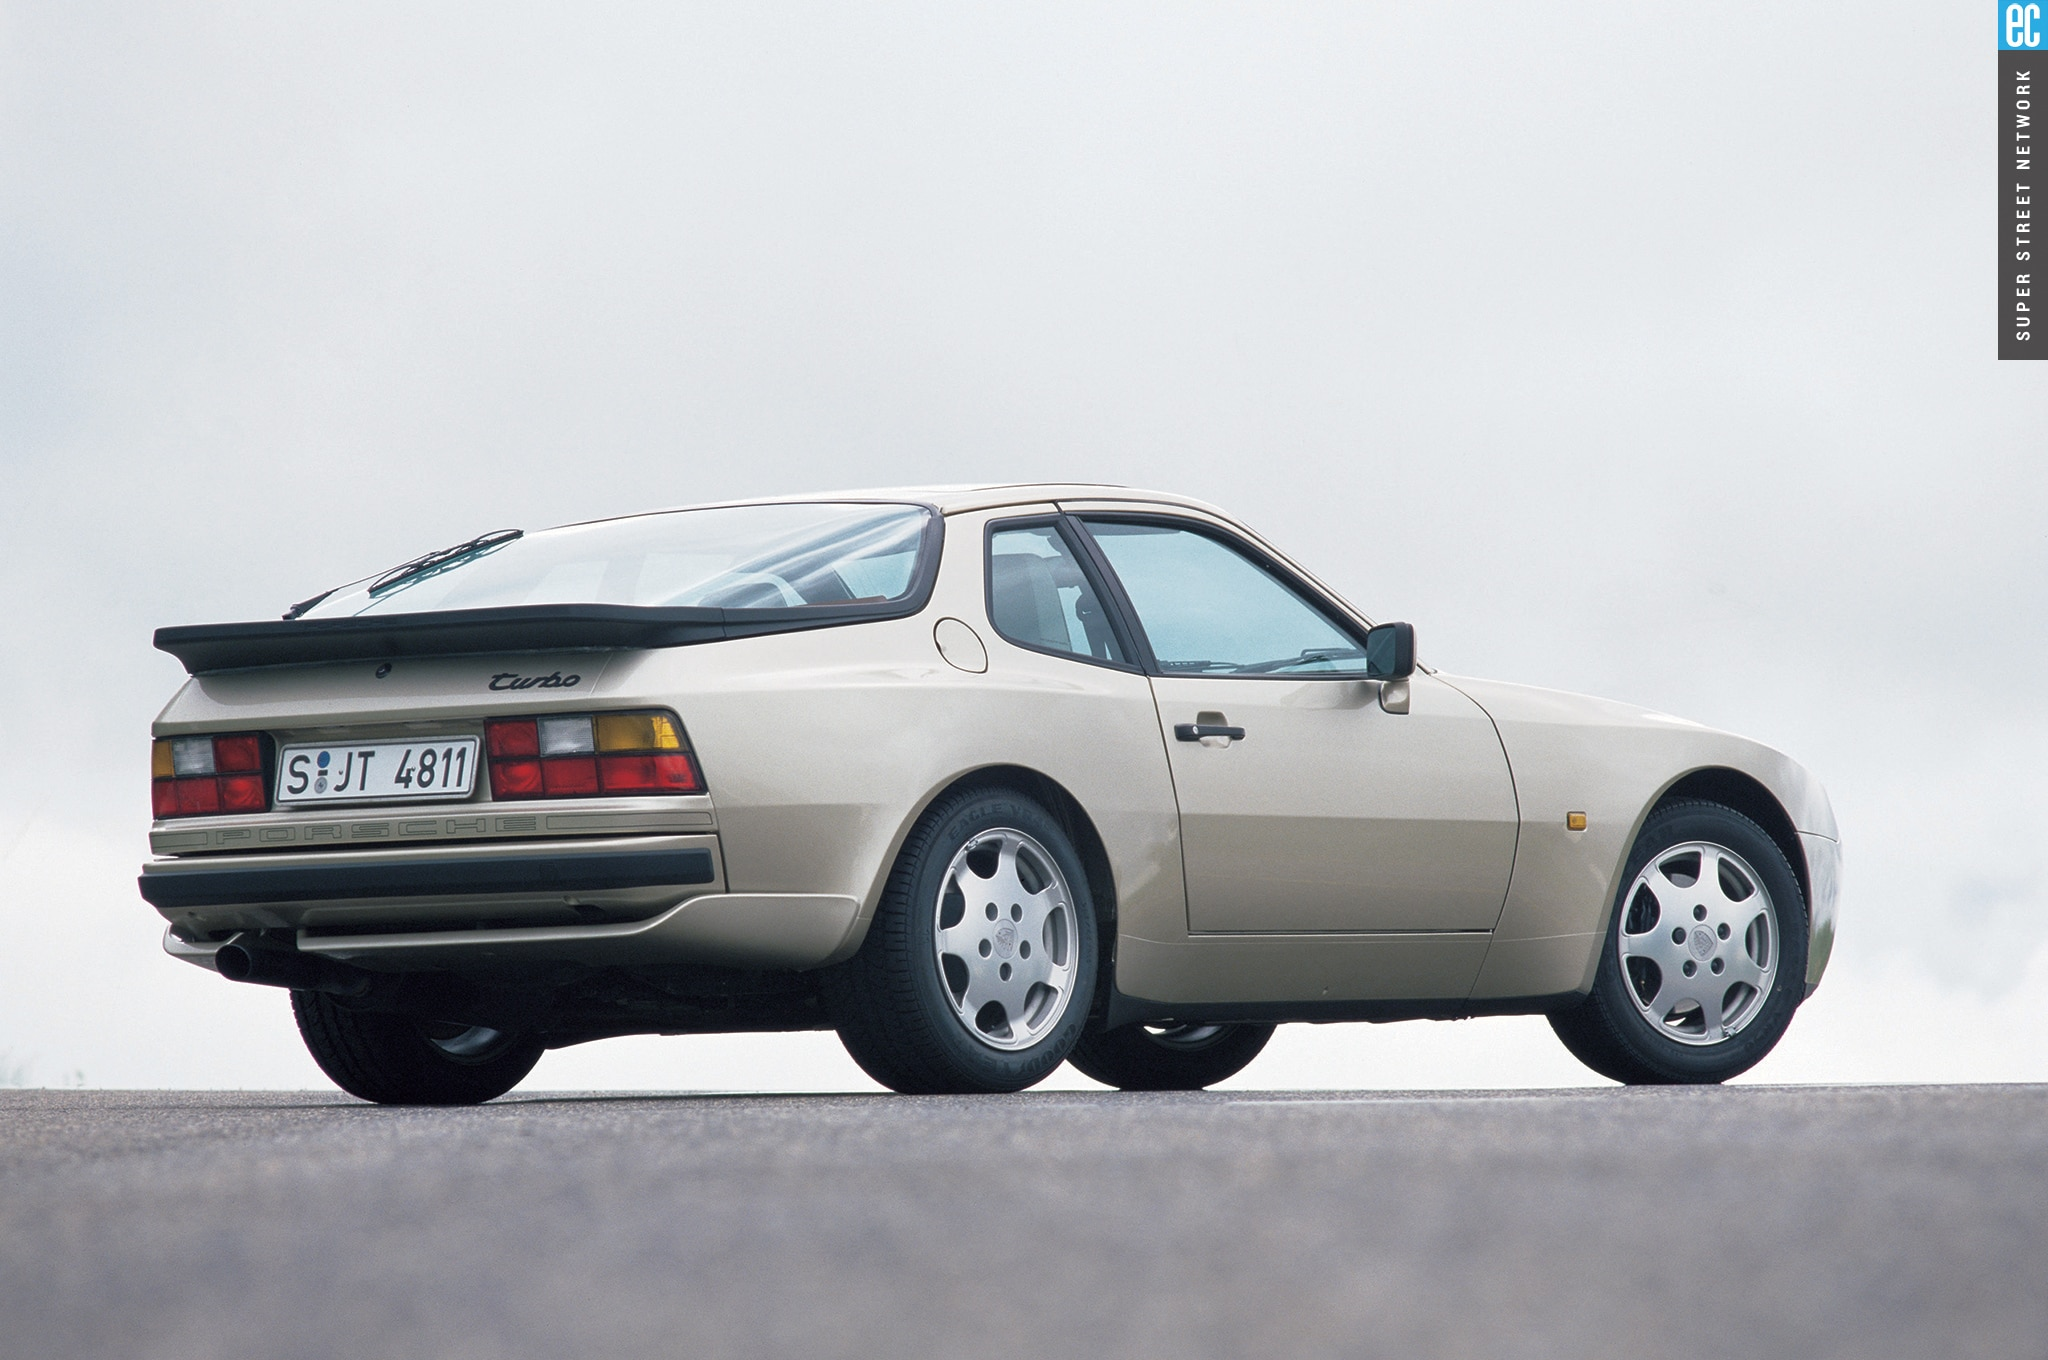 1988 Porsche 944 Turbo S Coupe1